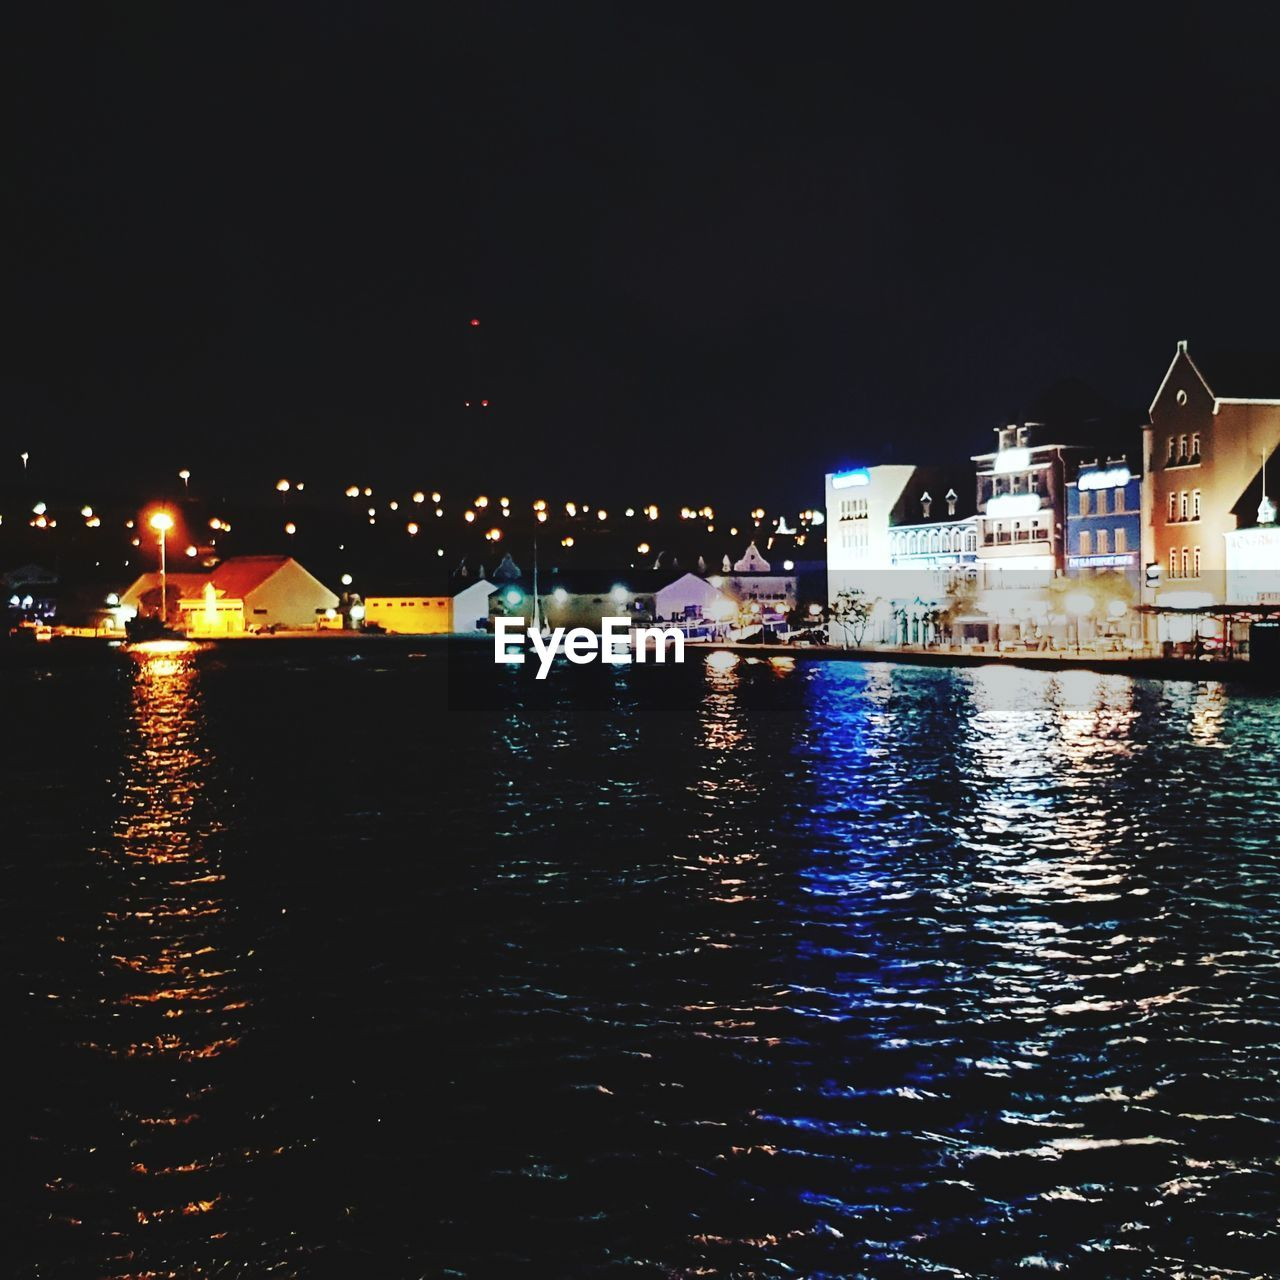 illuminated, night, water, waterfront, architecture, built structure, building exterior, reflection, sky, city, no people, river, nature, copy space, building, nautical vessel, outdoors, clear sky, passenger craft, nightlife